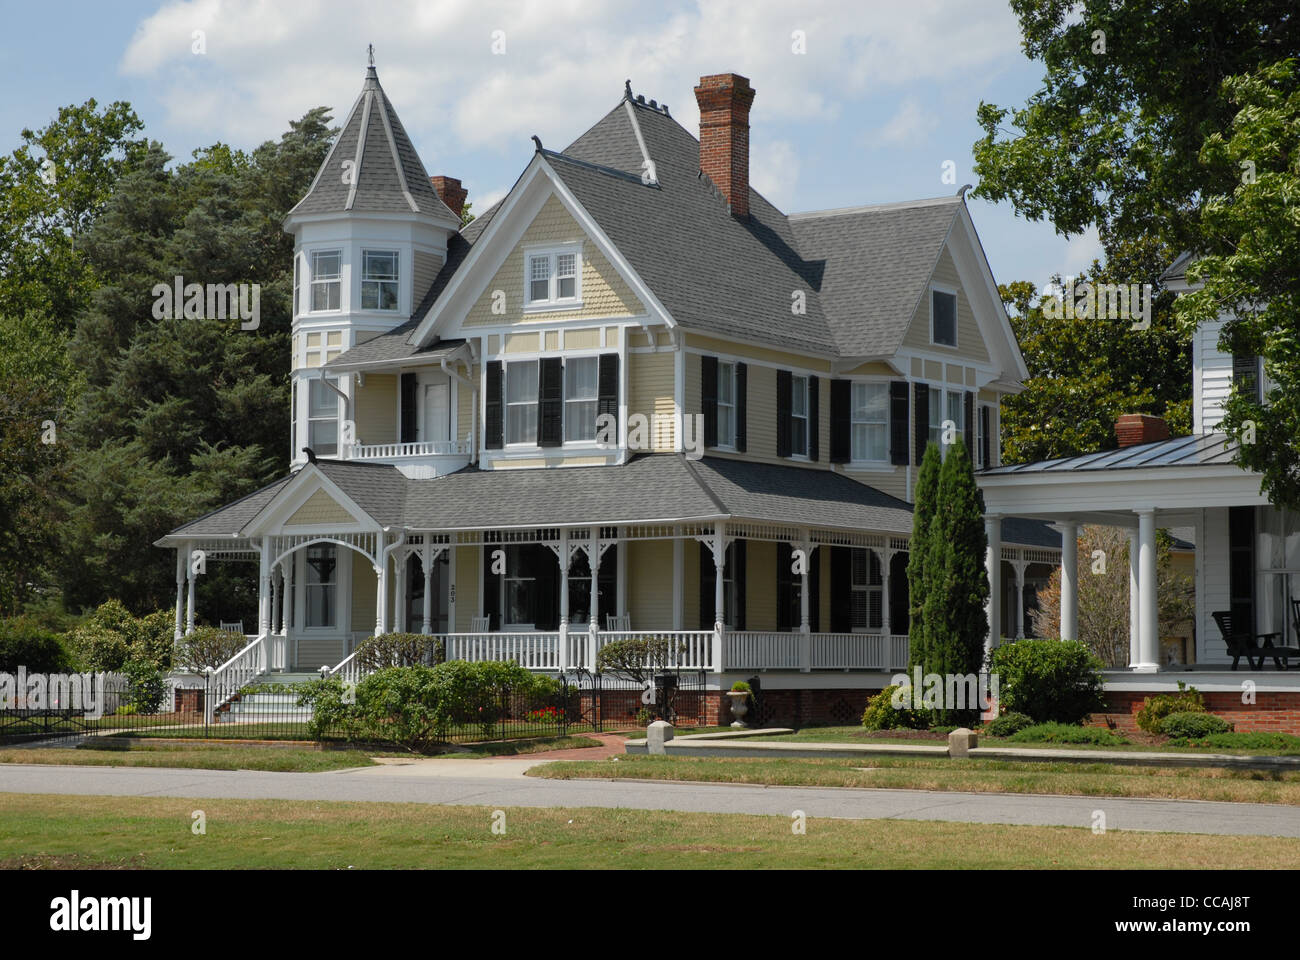 A Victorian House in Edenton, NC. - Stock Image